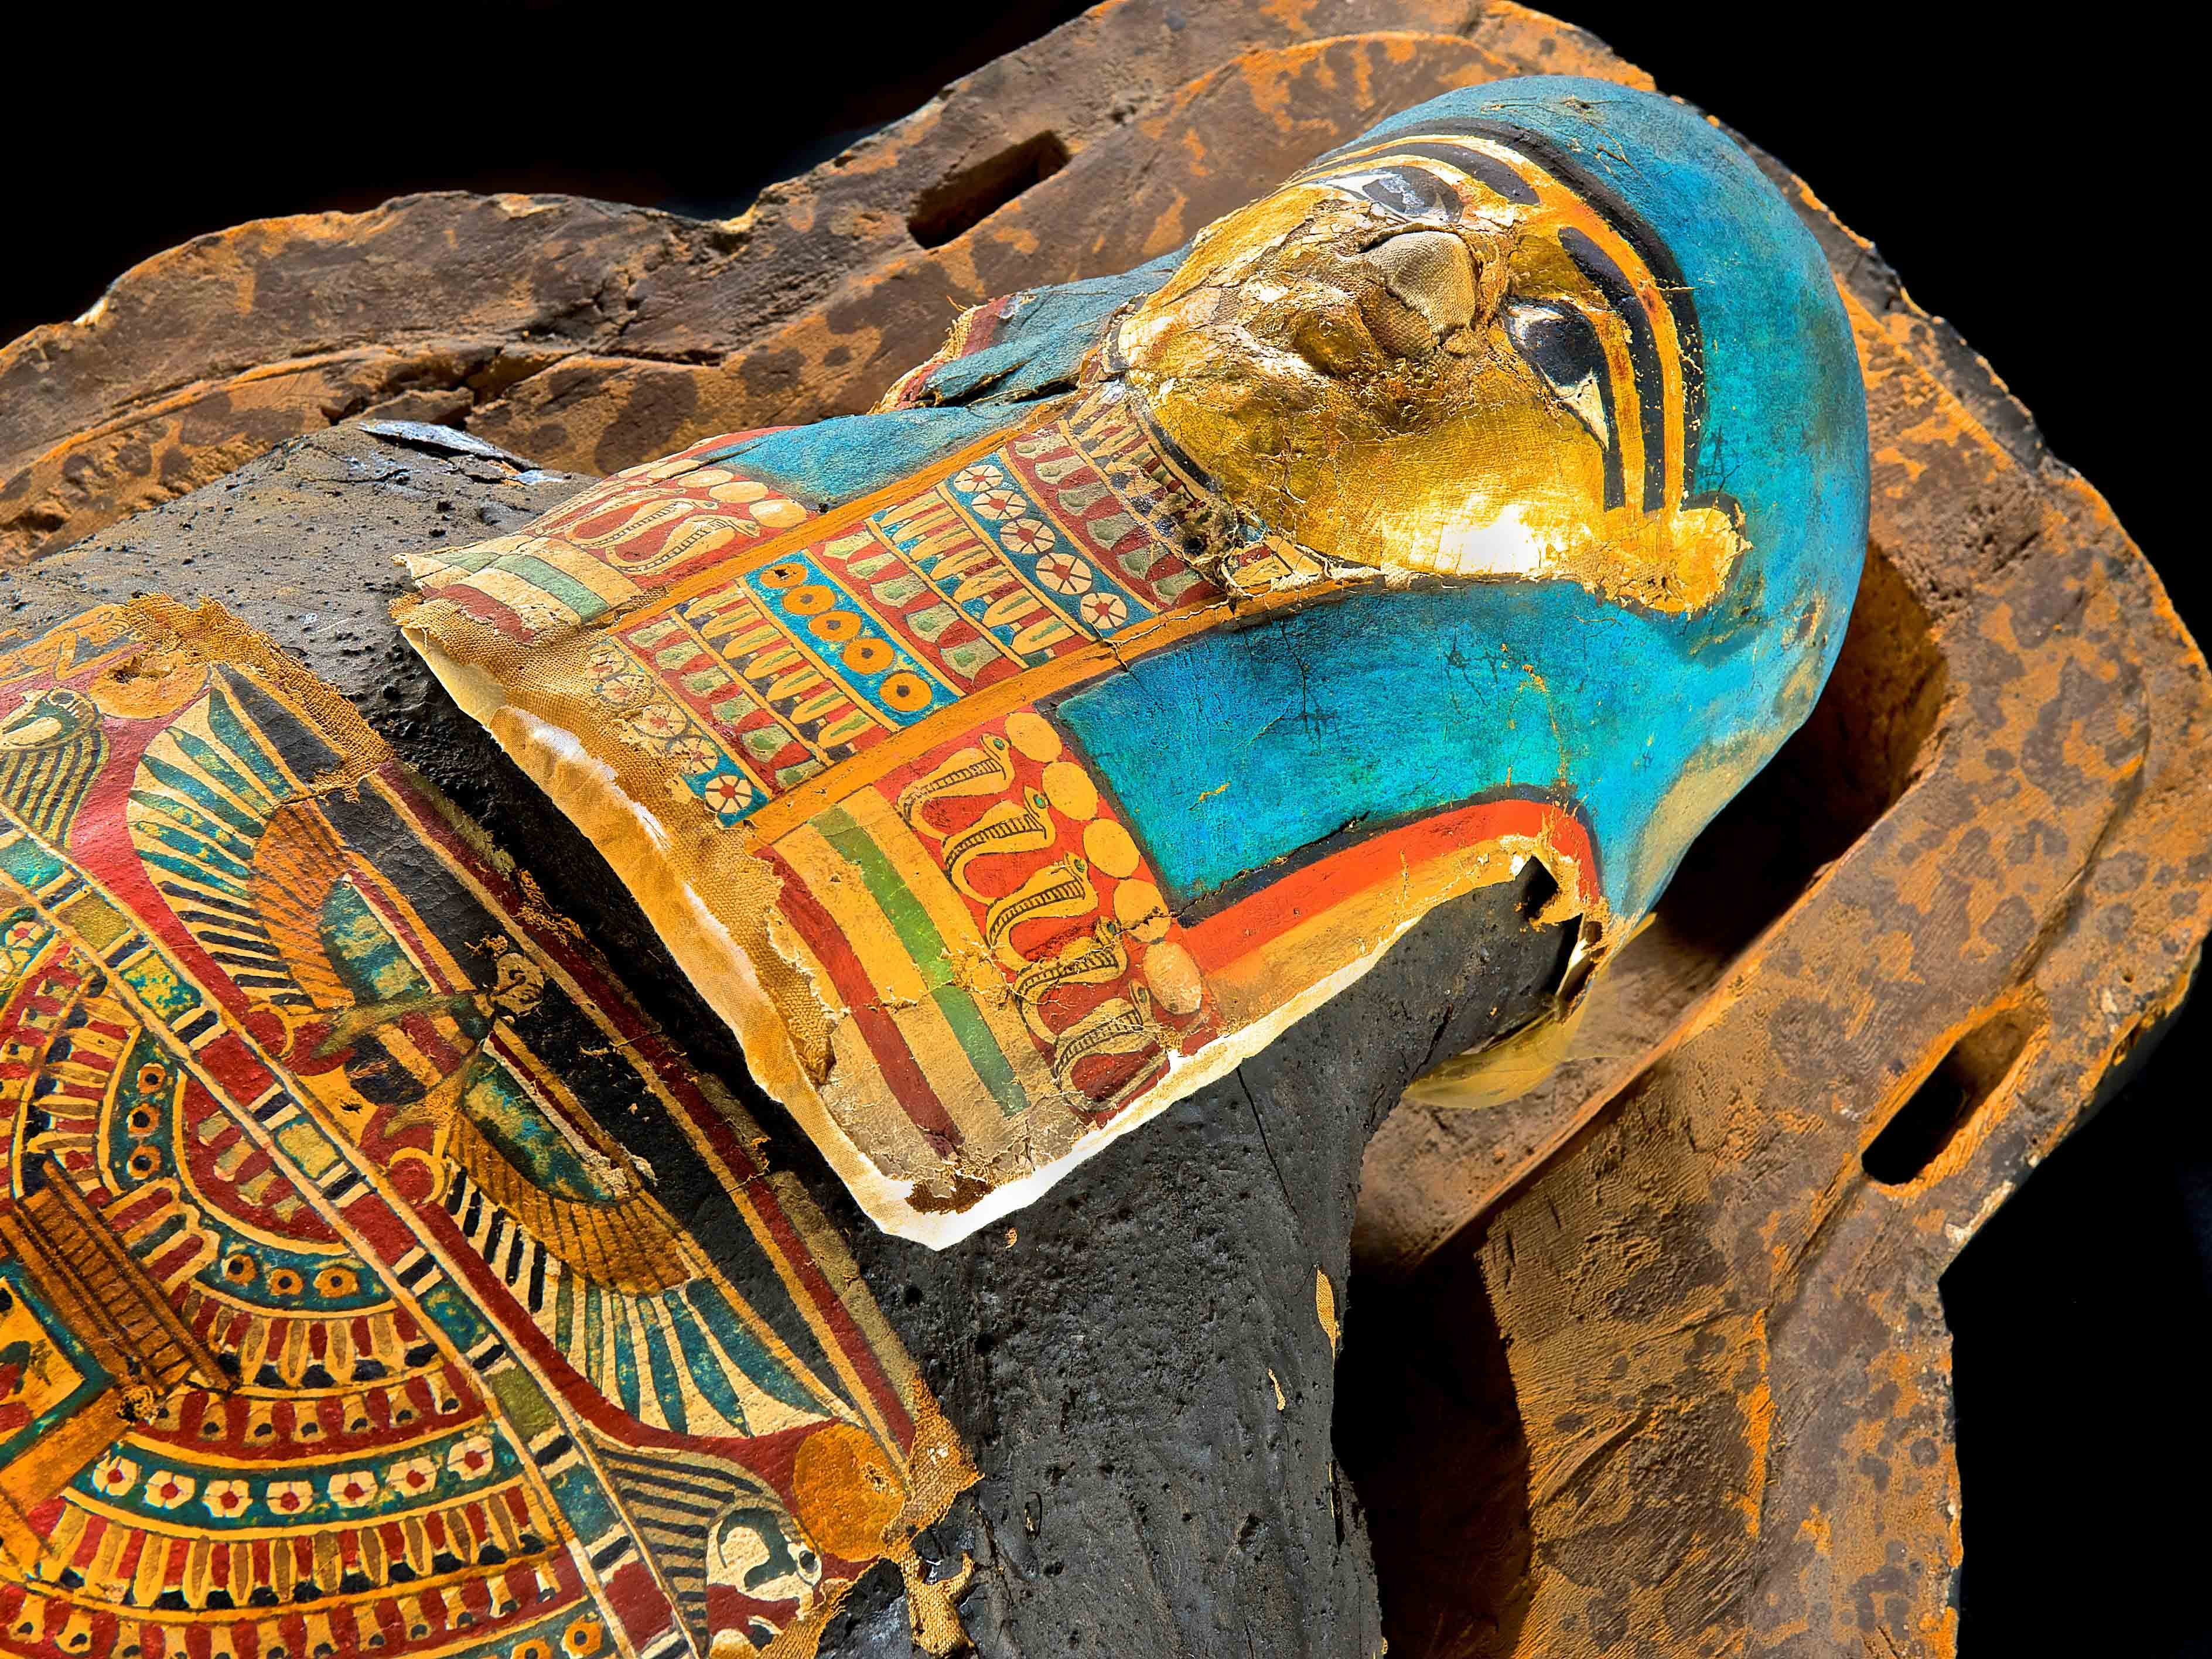 Nes Hor is among the Mummies of the World: The Exhibition items on display at the Arizona Science Center.